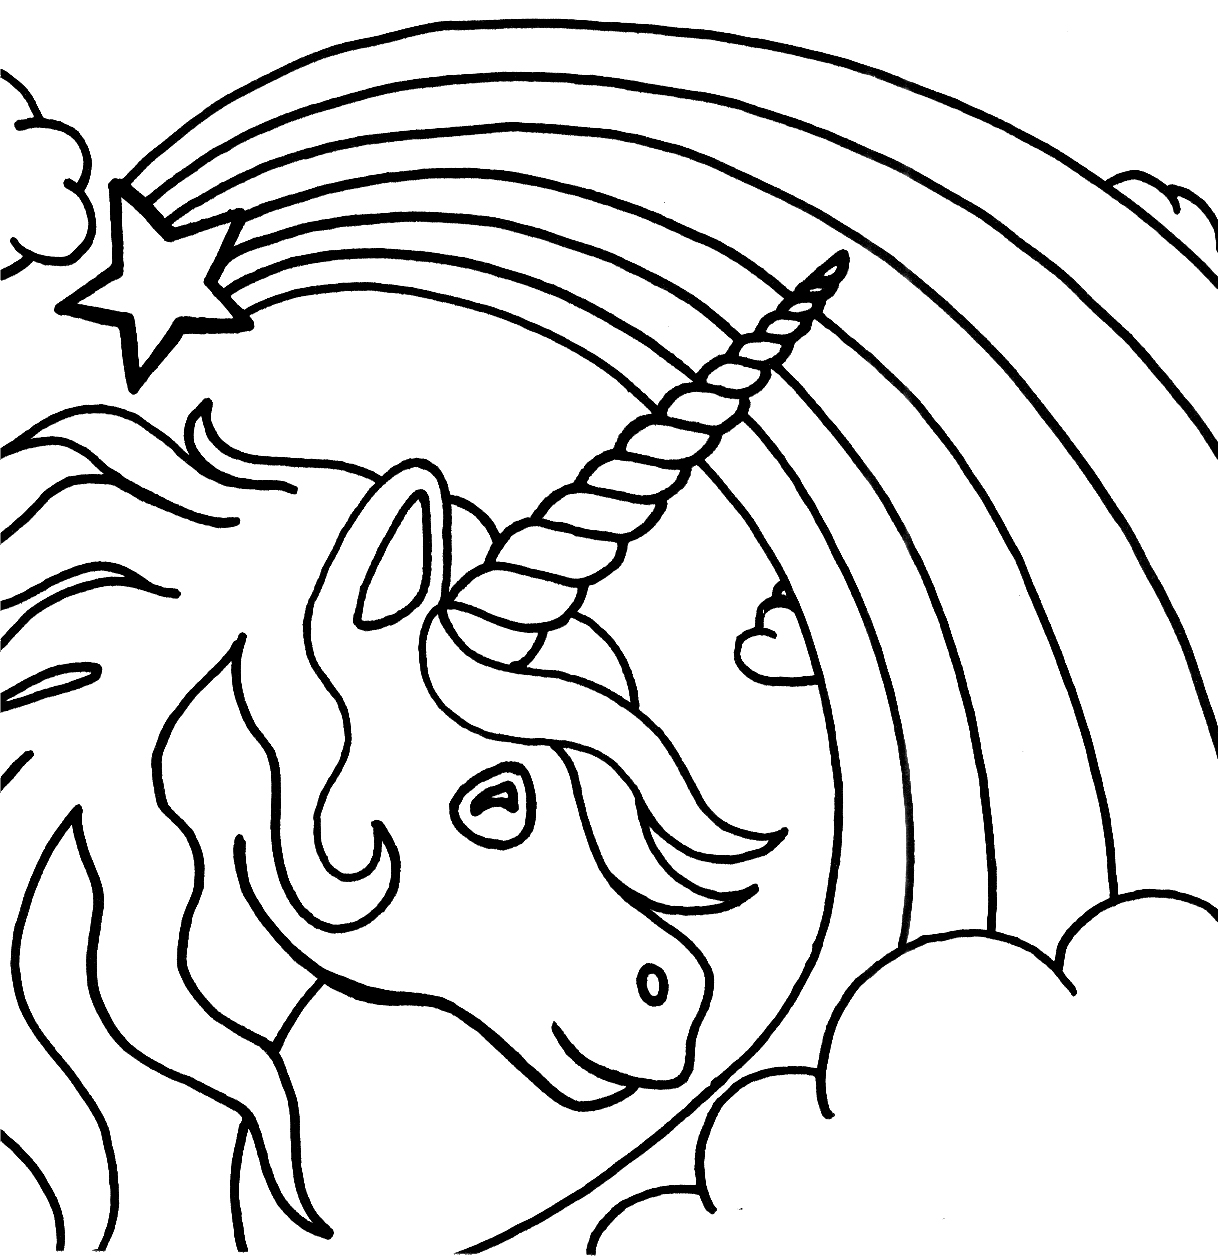 Free coloring in pages - Unicorn Coloring Pages For Kids